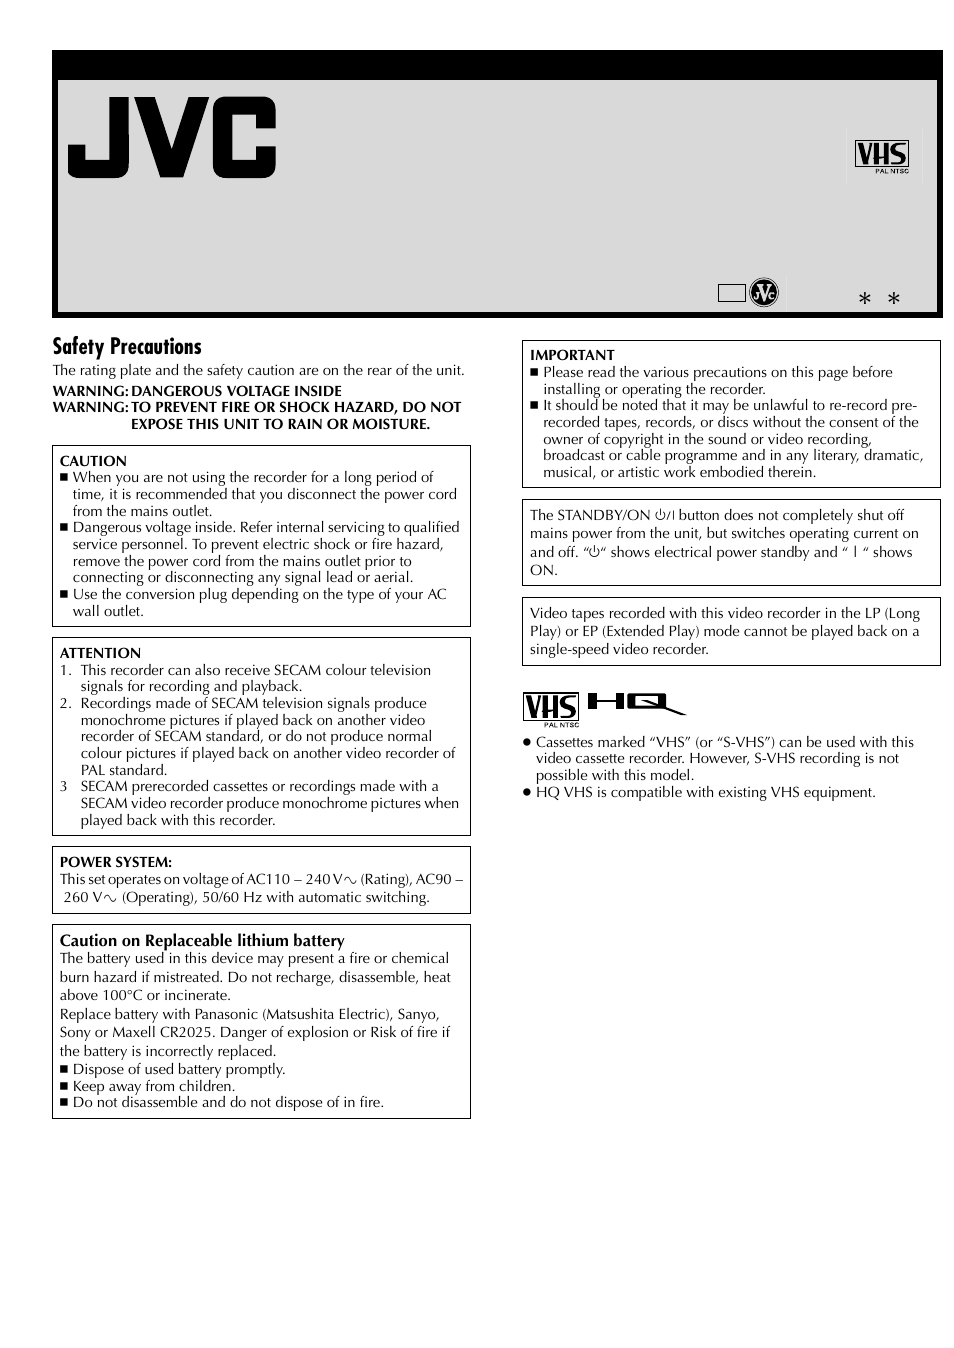 Jvc Hr J381em User Manual 16 Pages Also For J387em Automatic Mains Disconnect